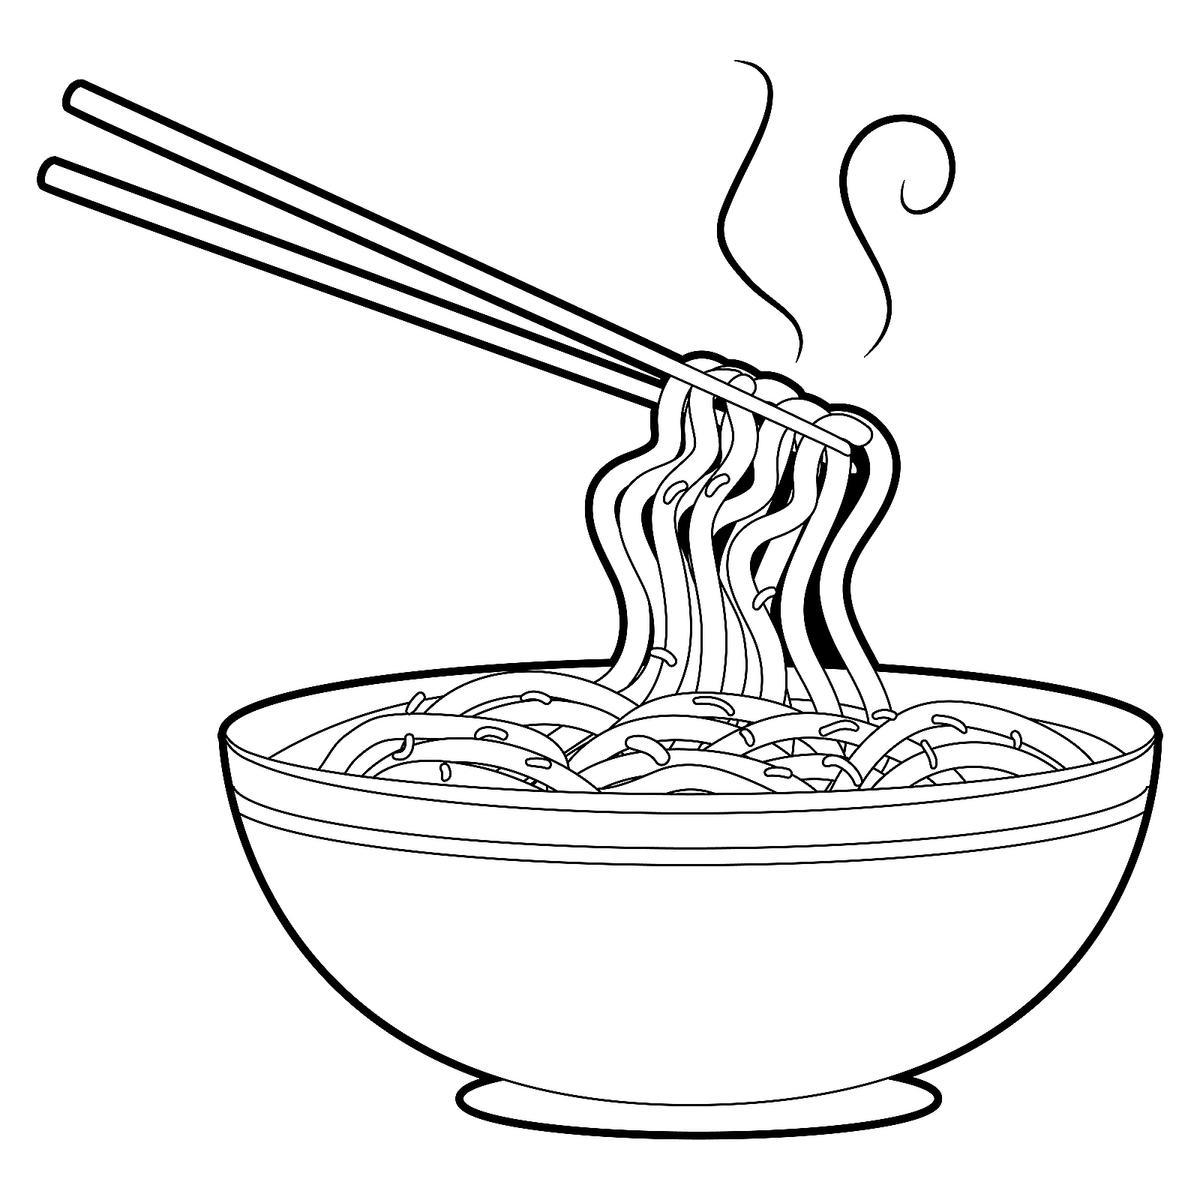 coloring picture food free printable food coloring pages for kids picture coloring food